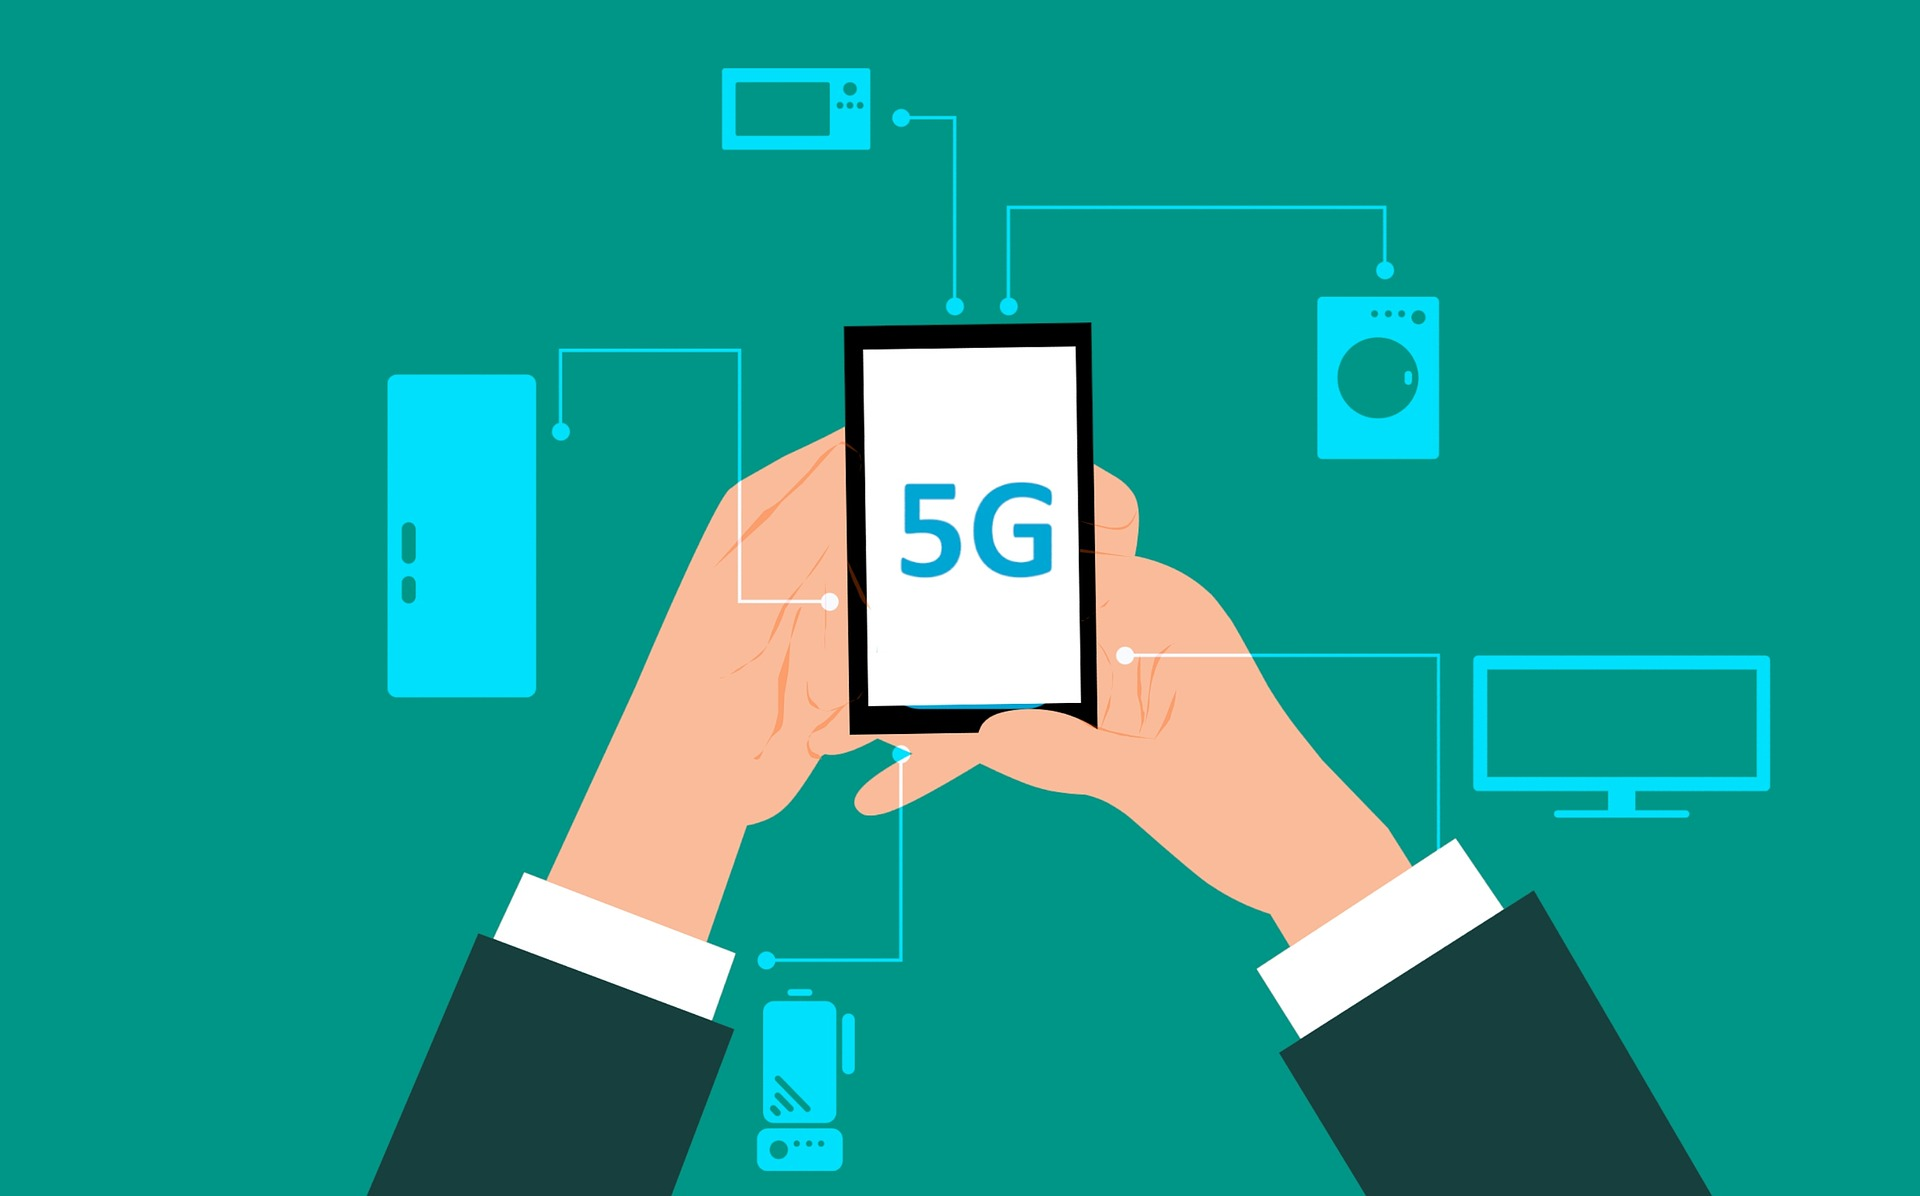 <i>5g, Image Source: <a href='https://pixabay.com/en/accessibility-browsing-5g-business-3570138/'>Pixabay</a></i>